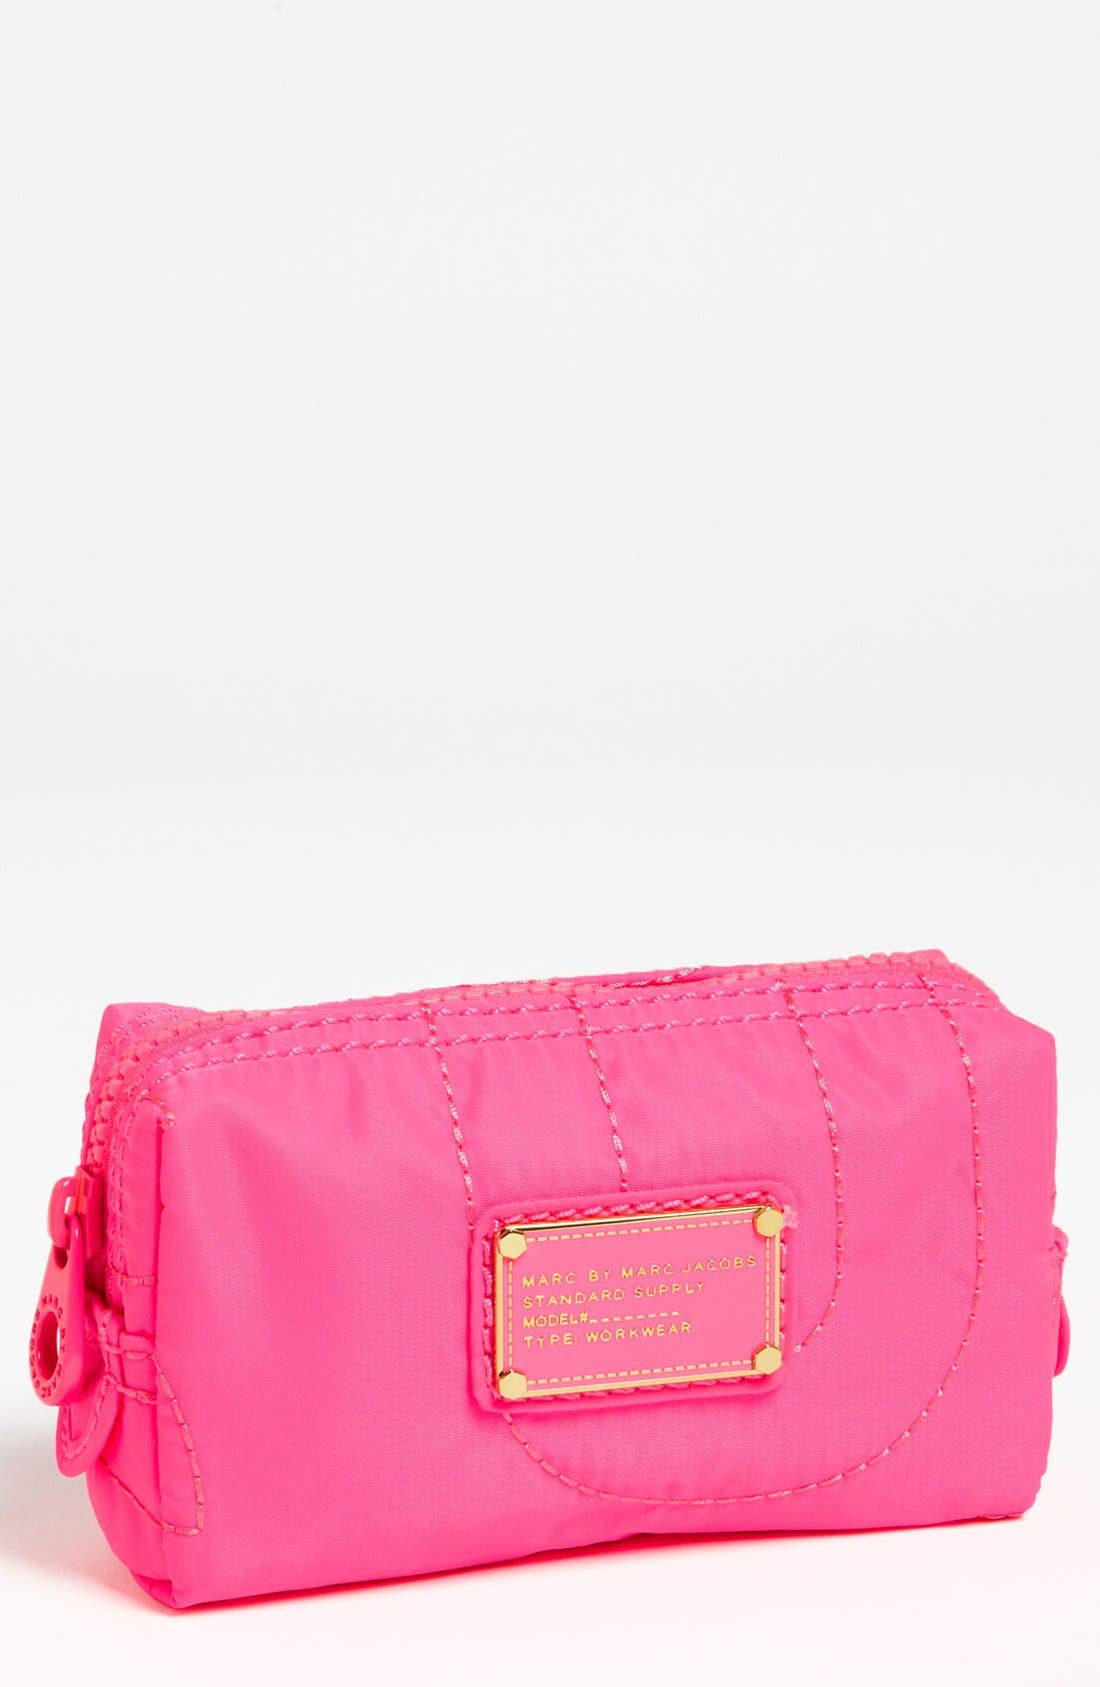 MARC BY MARC JACOBS 'Pretty Nylon' Cosmetics Case,                             Main thumbnail 1, color,                             676